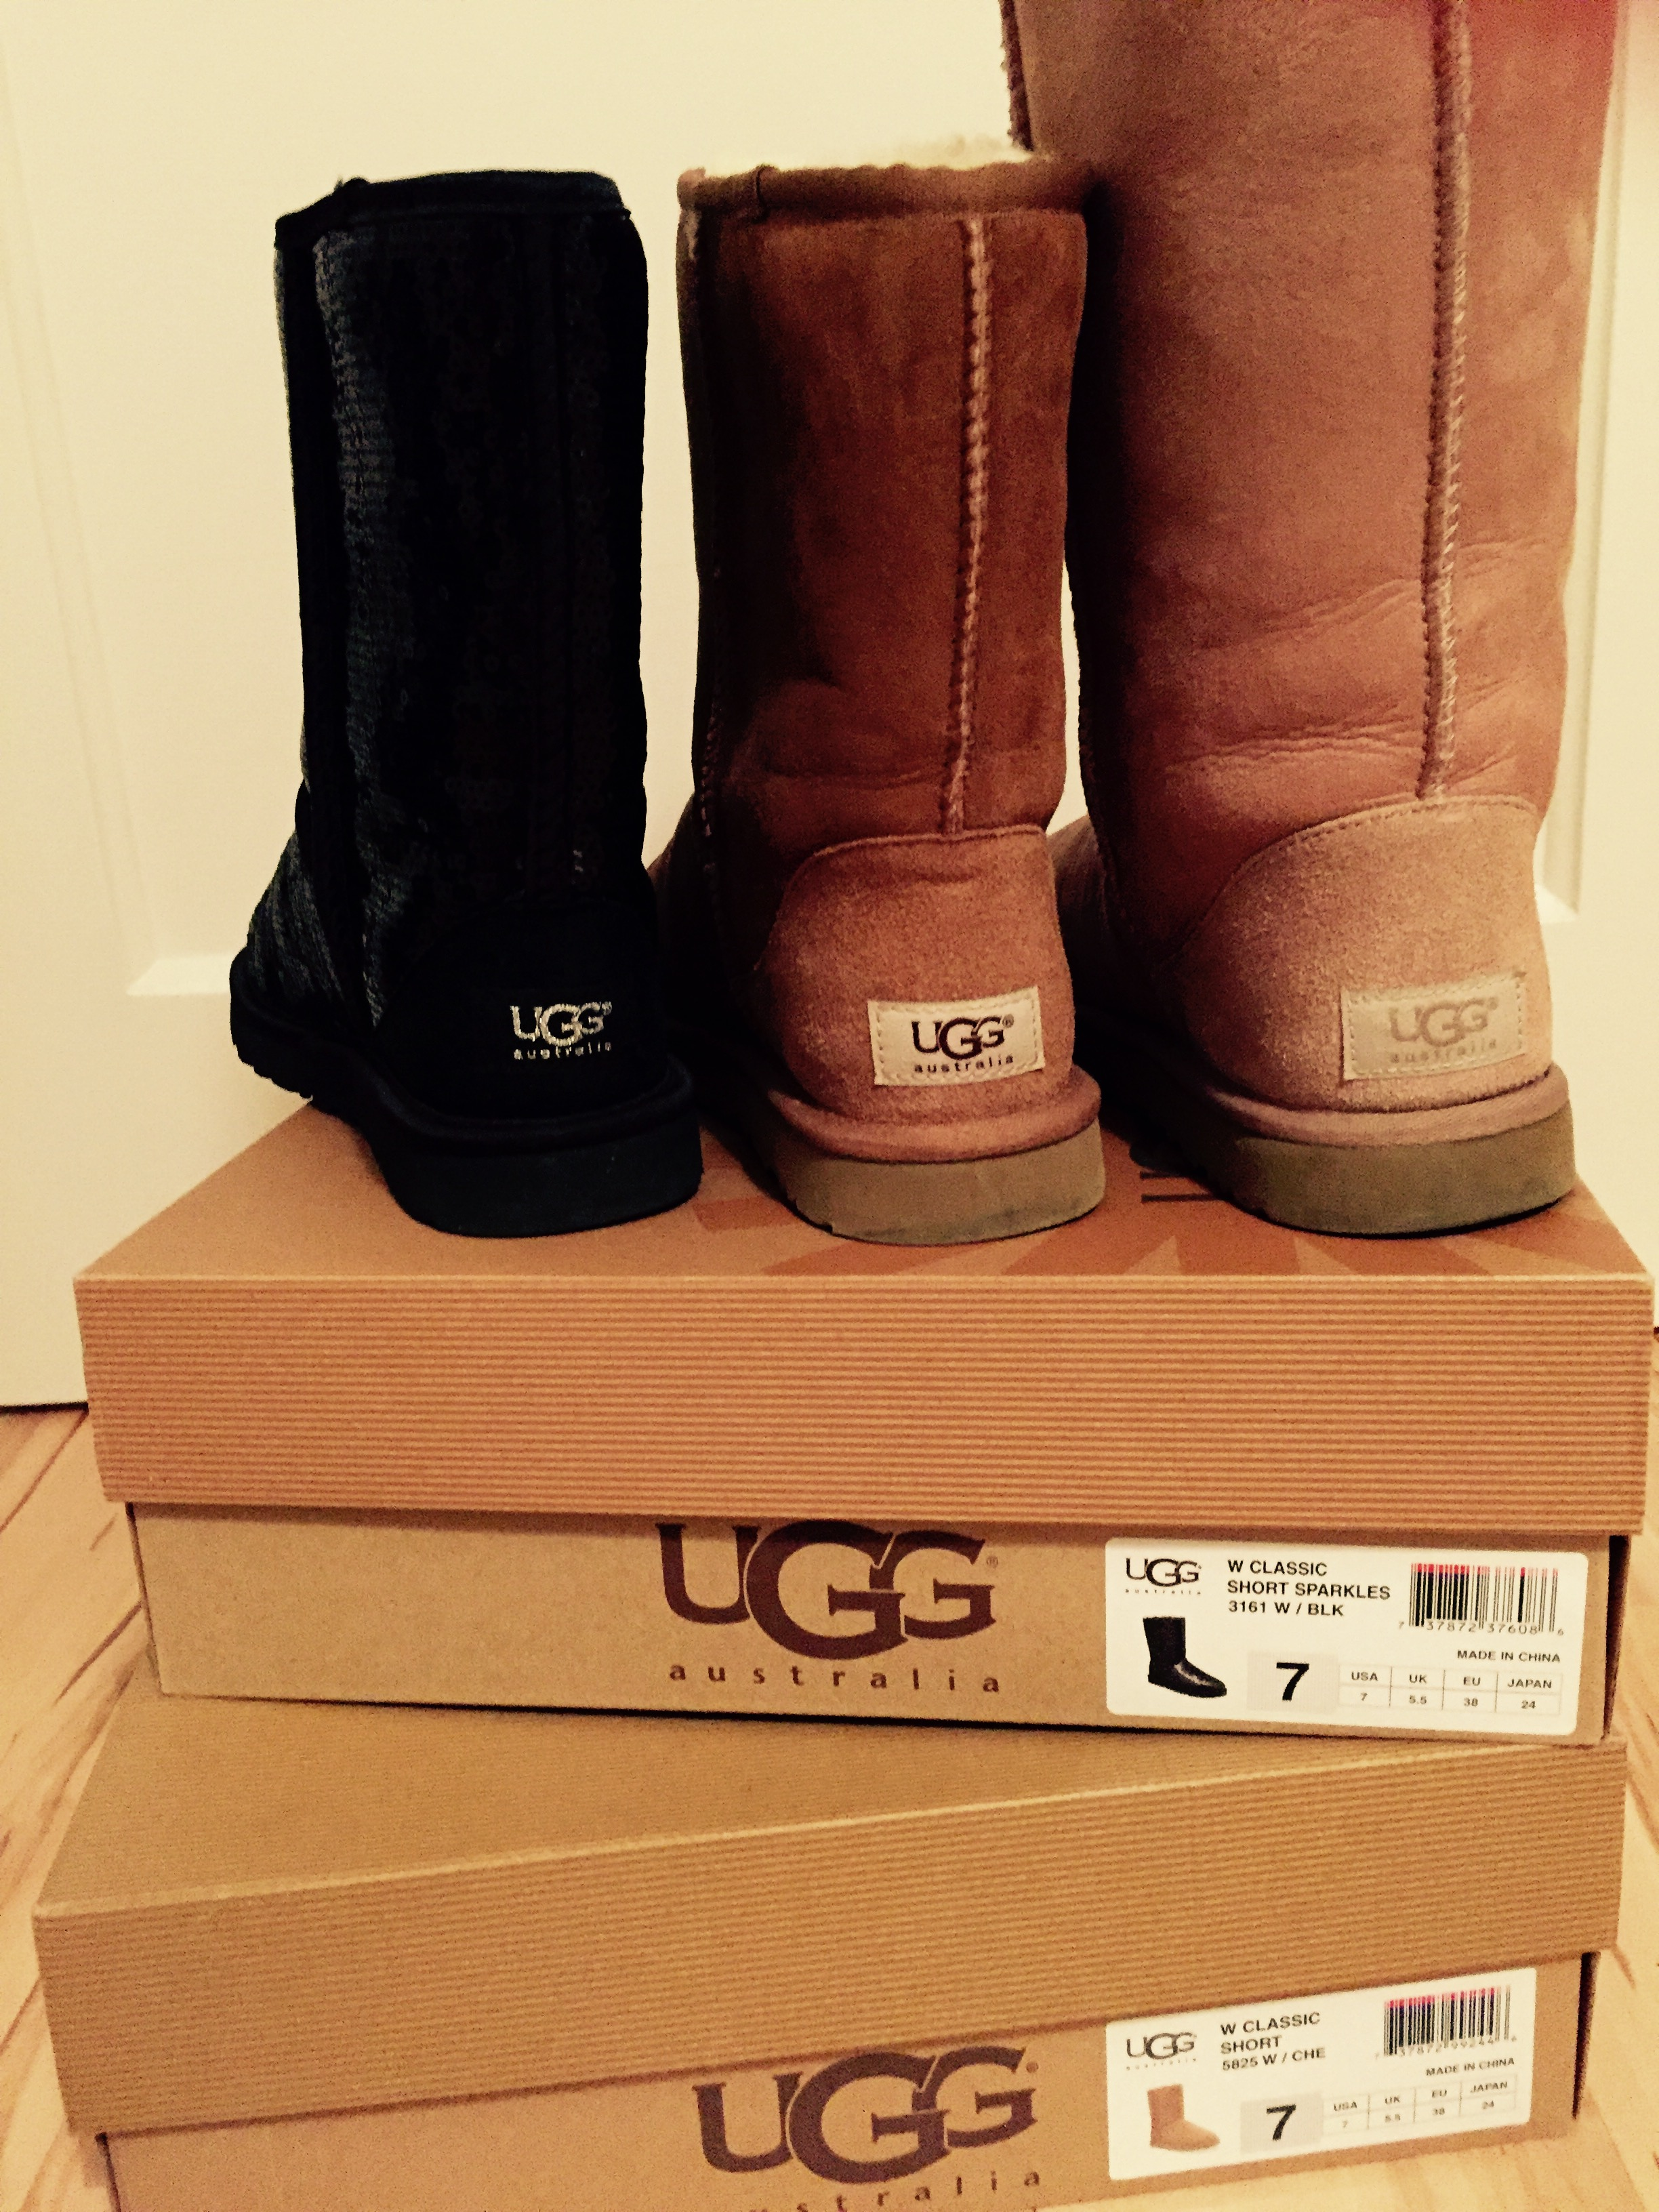 4624c0c92c7 Difference Between the Original and Fake UGG Boots - Shoeaholics ...